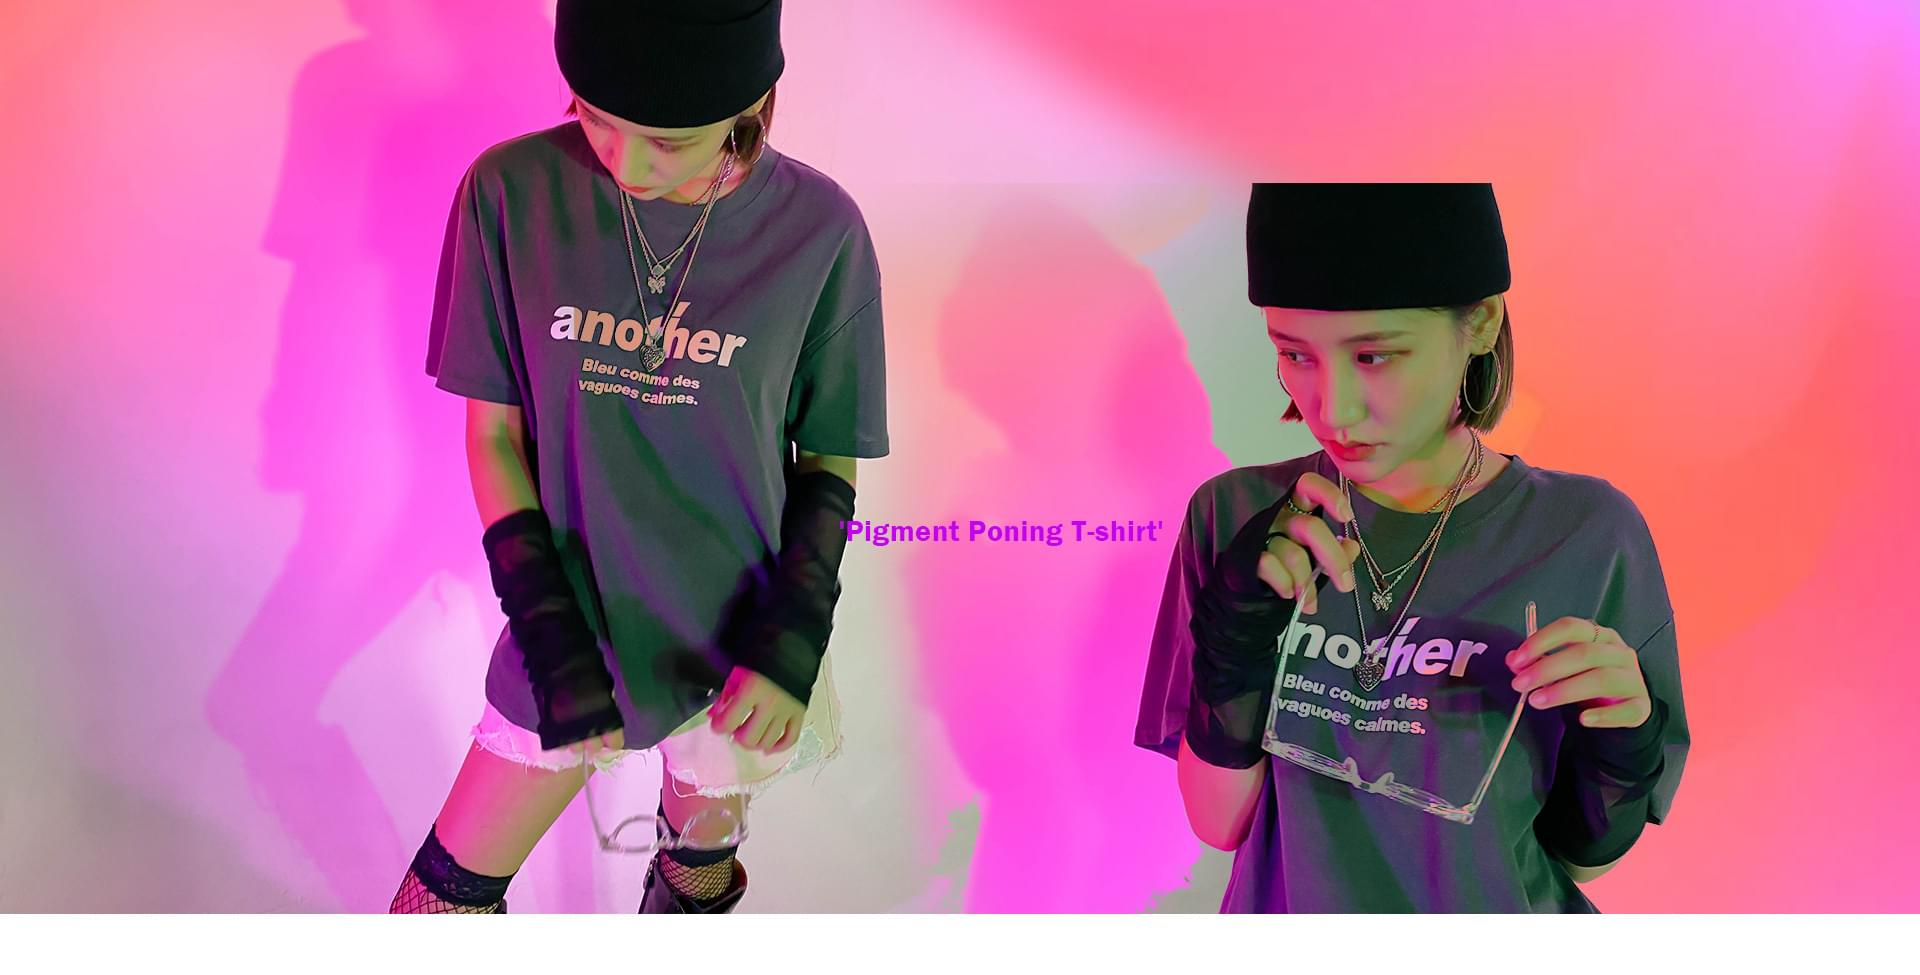 Pigment Forning T-Shirt